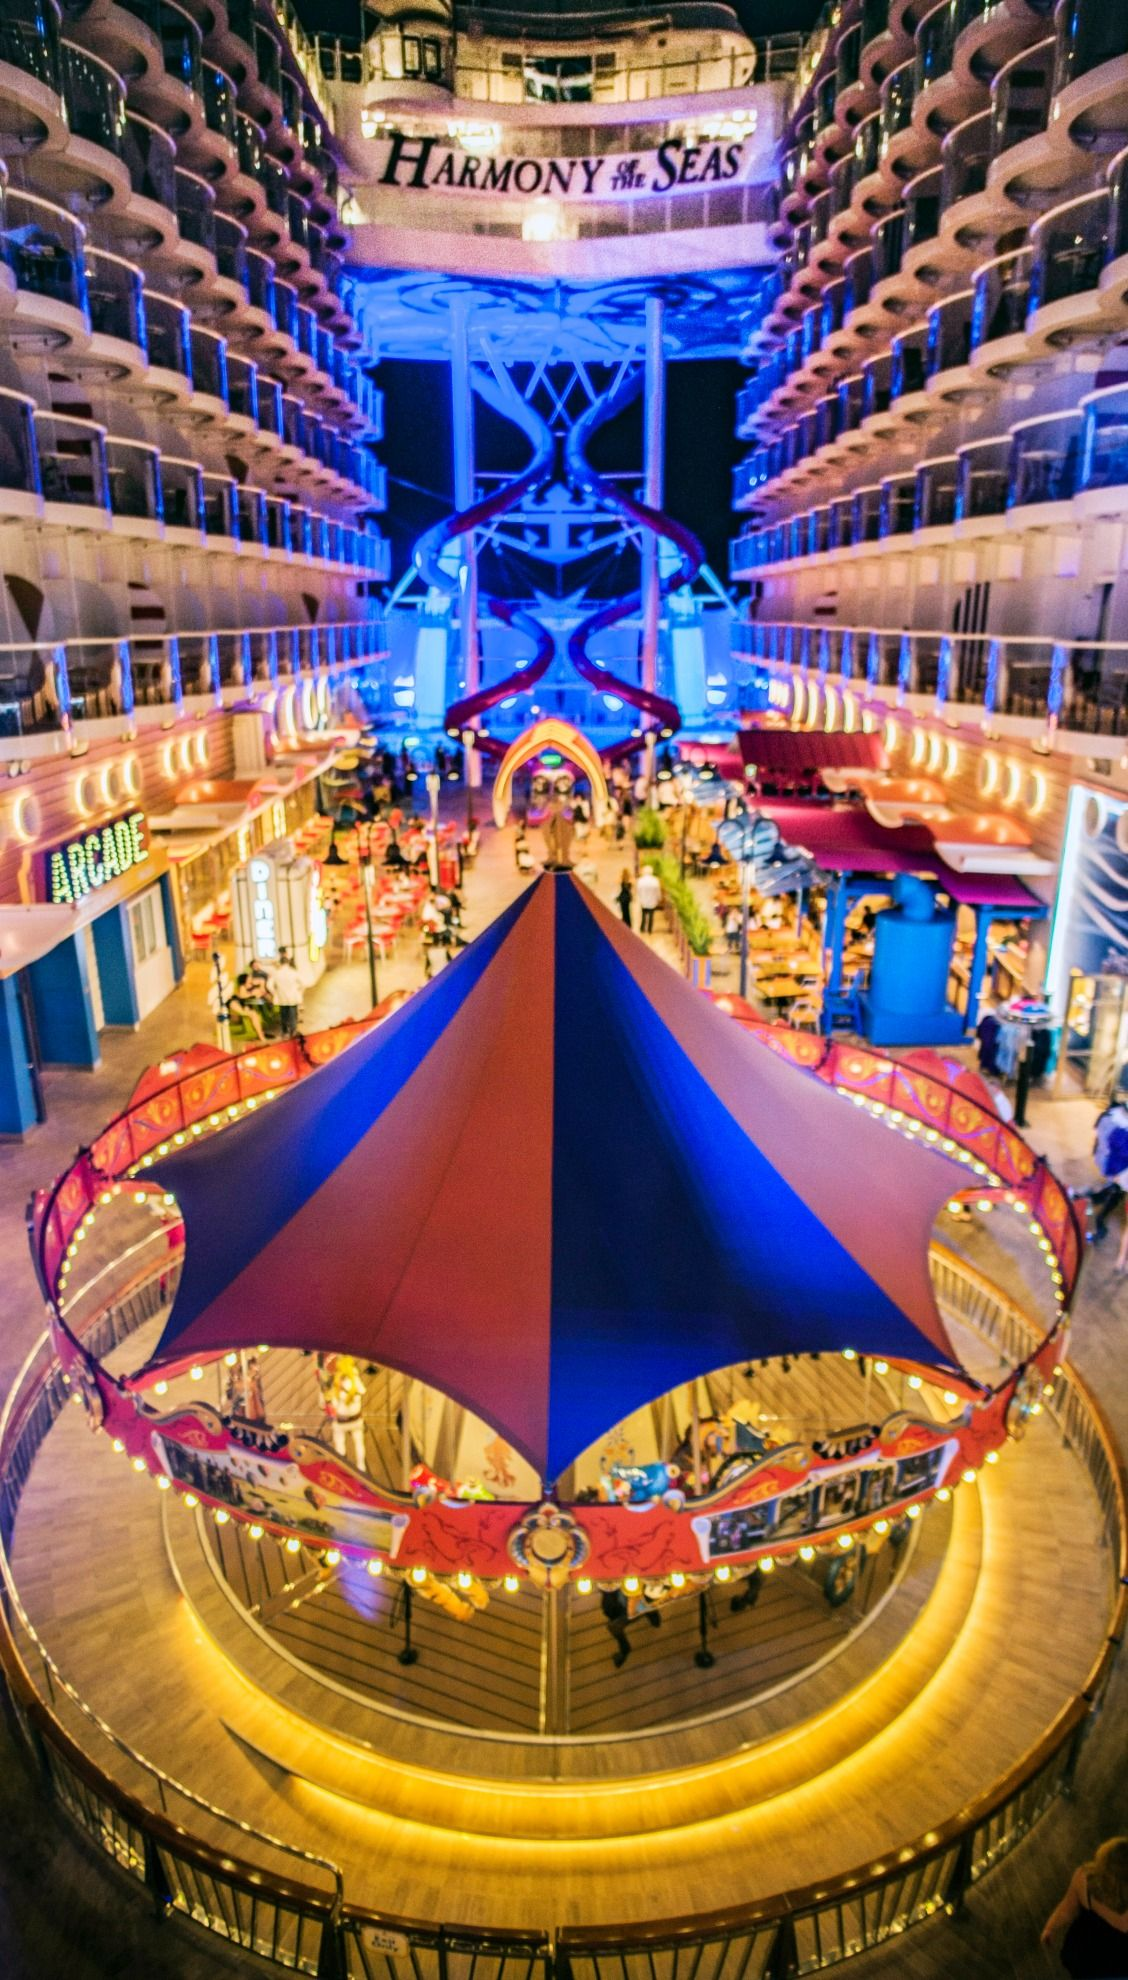 Harmony Of The Seas Epic Always On Rotation A Stroll Through The Boardwalk Onboard Royal Caribb Carribean Cruise Royal Carribean Cruise Cruise Ship Pictures